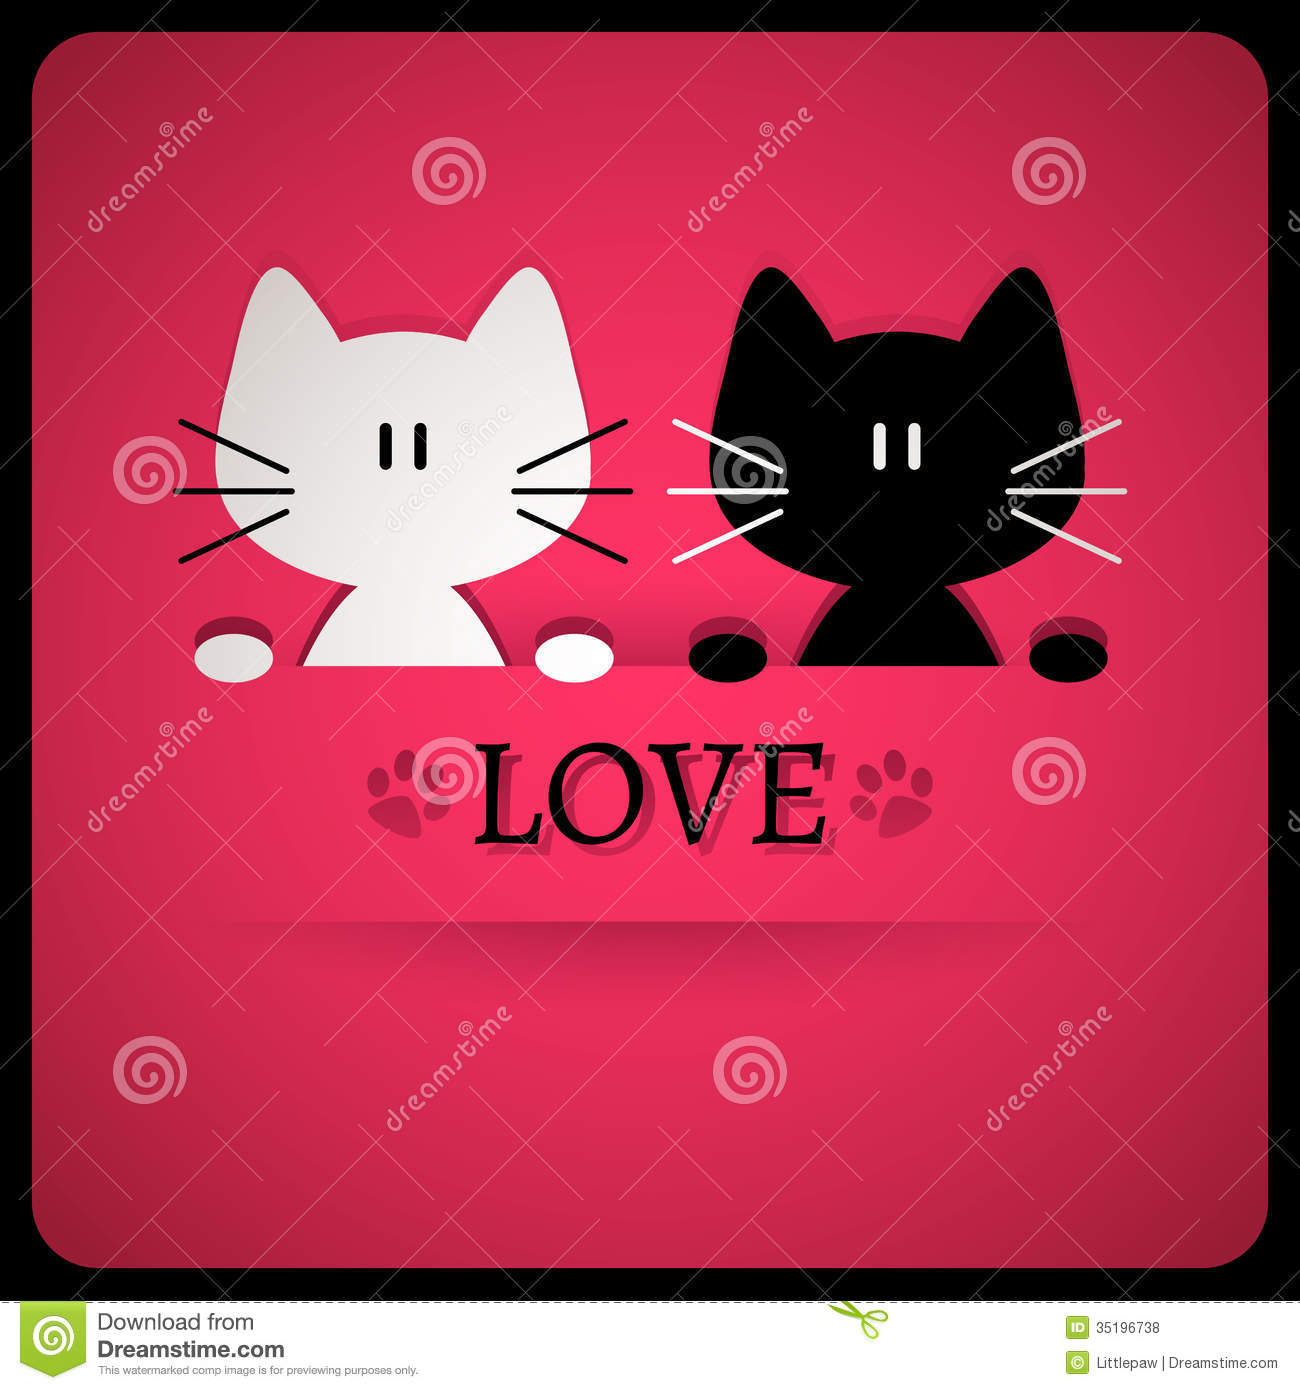 Romantic Card With Cute Cats